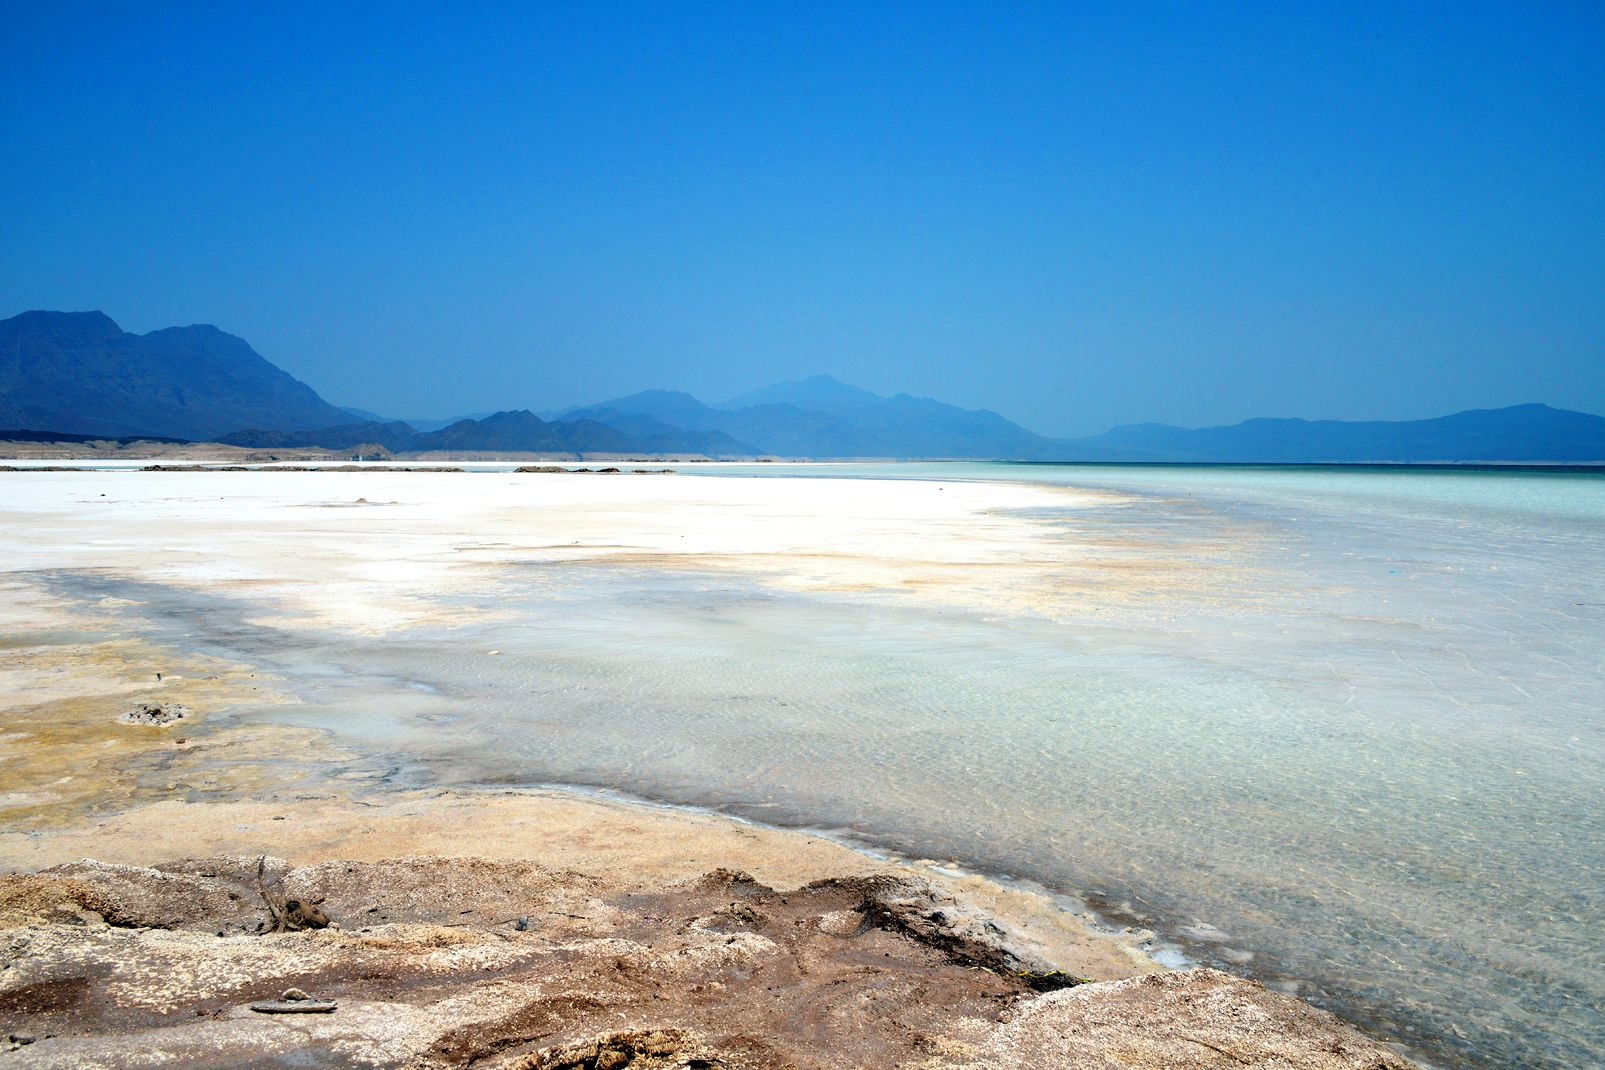 Lac Assal is the lowest point in Djibouti, it is also the lowest point on the continent of Africa.